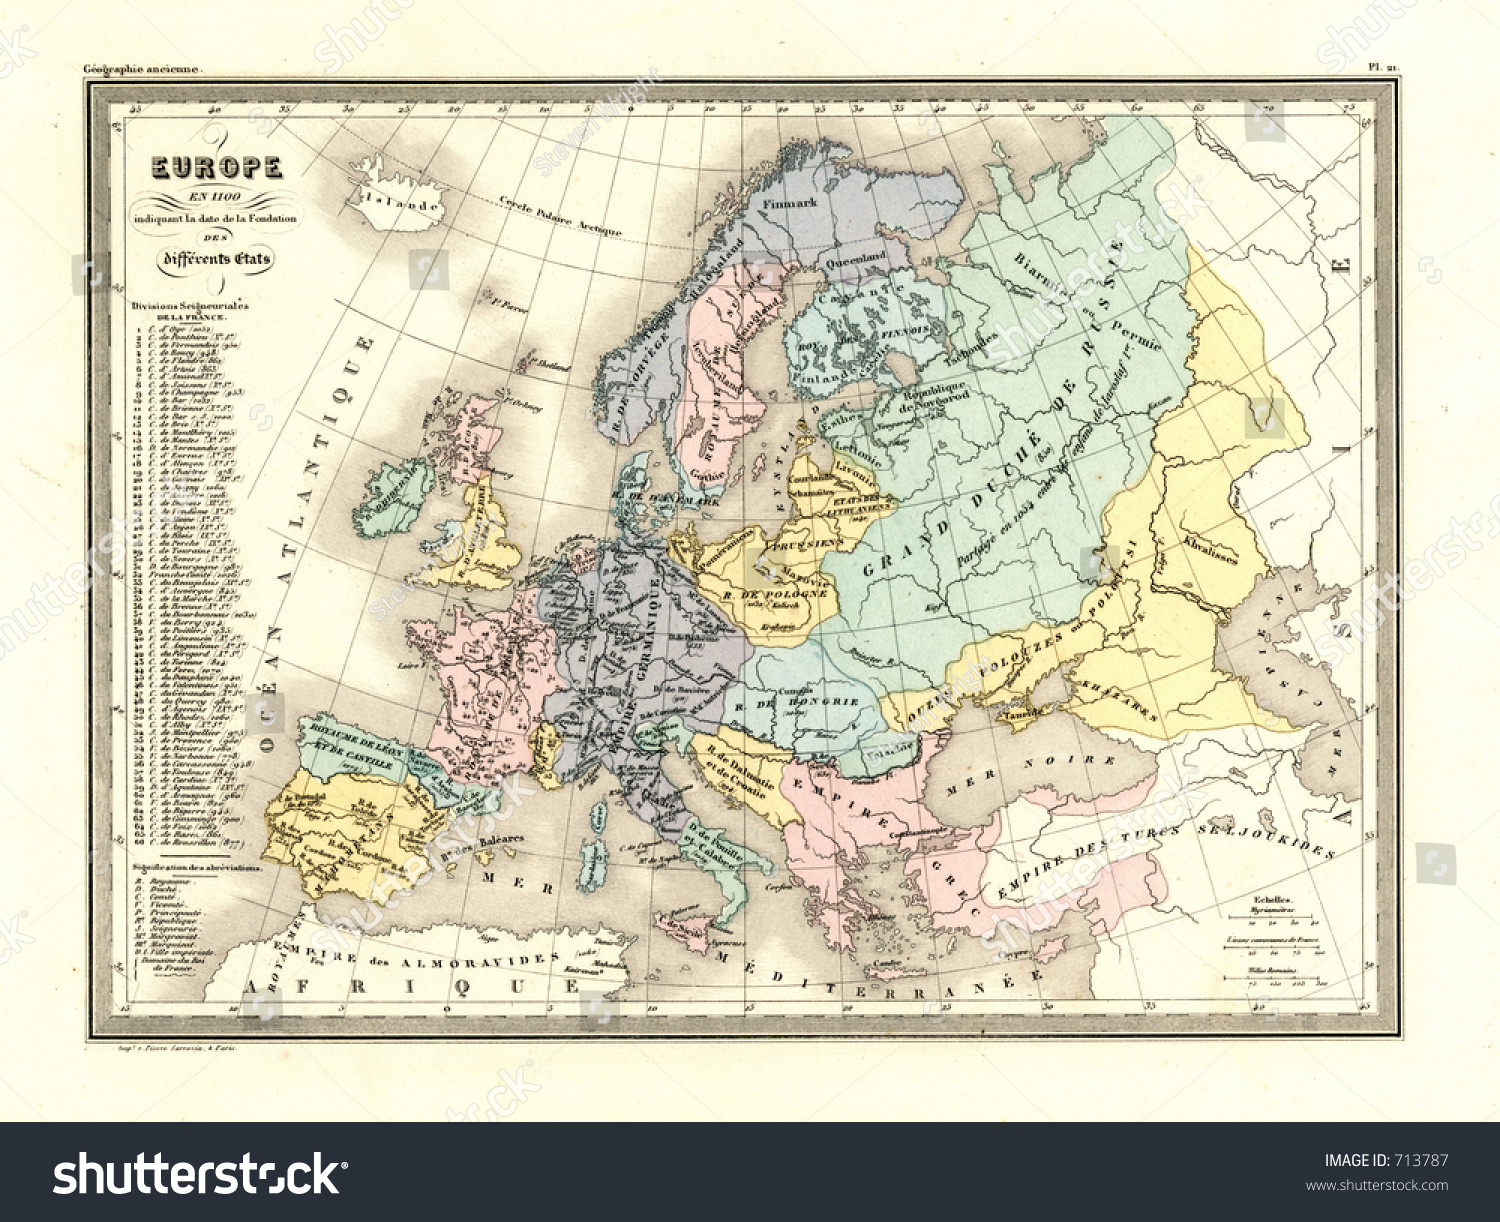 Map Of Europe 1100 Ad.Royalty Free Stock Illustration Of Antique Map Europe 1100 Ad Stock